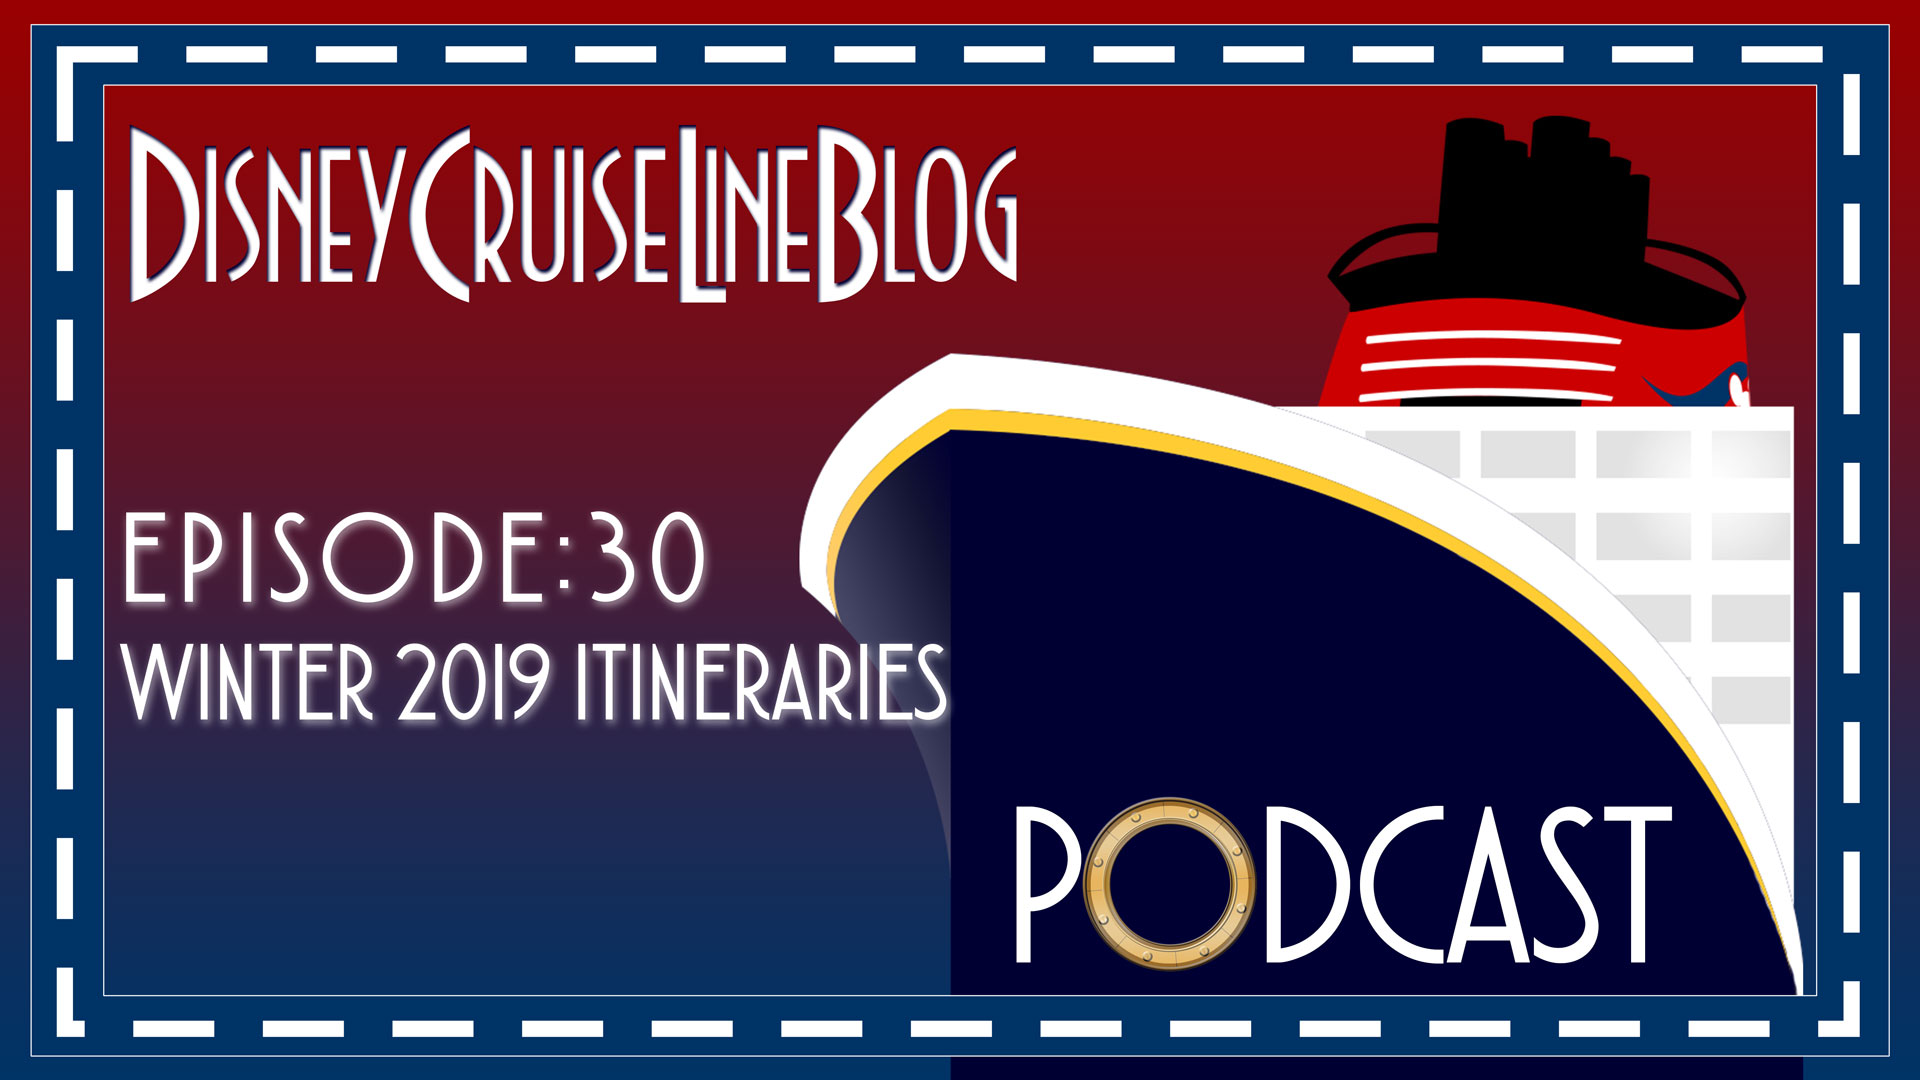 DCL Blog Podcast Episode 30 Winter 2019 Itineraries